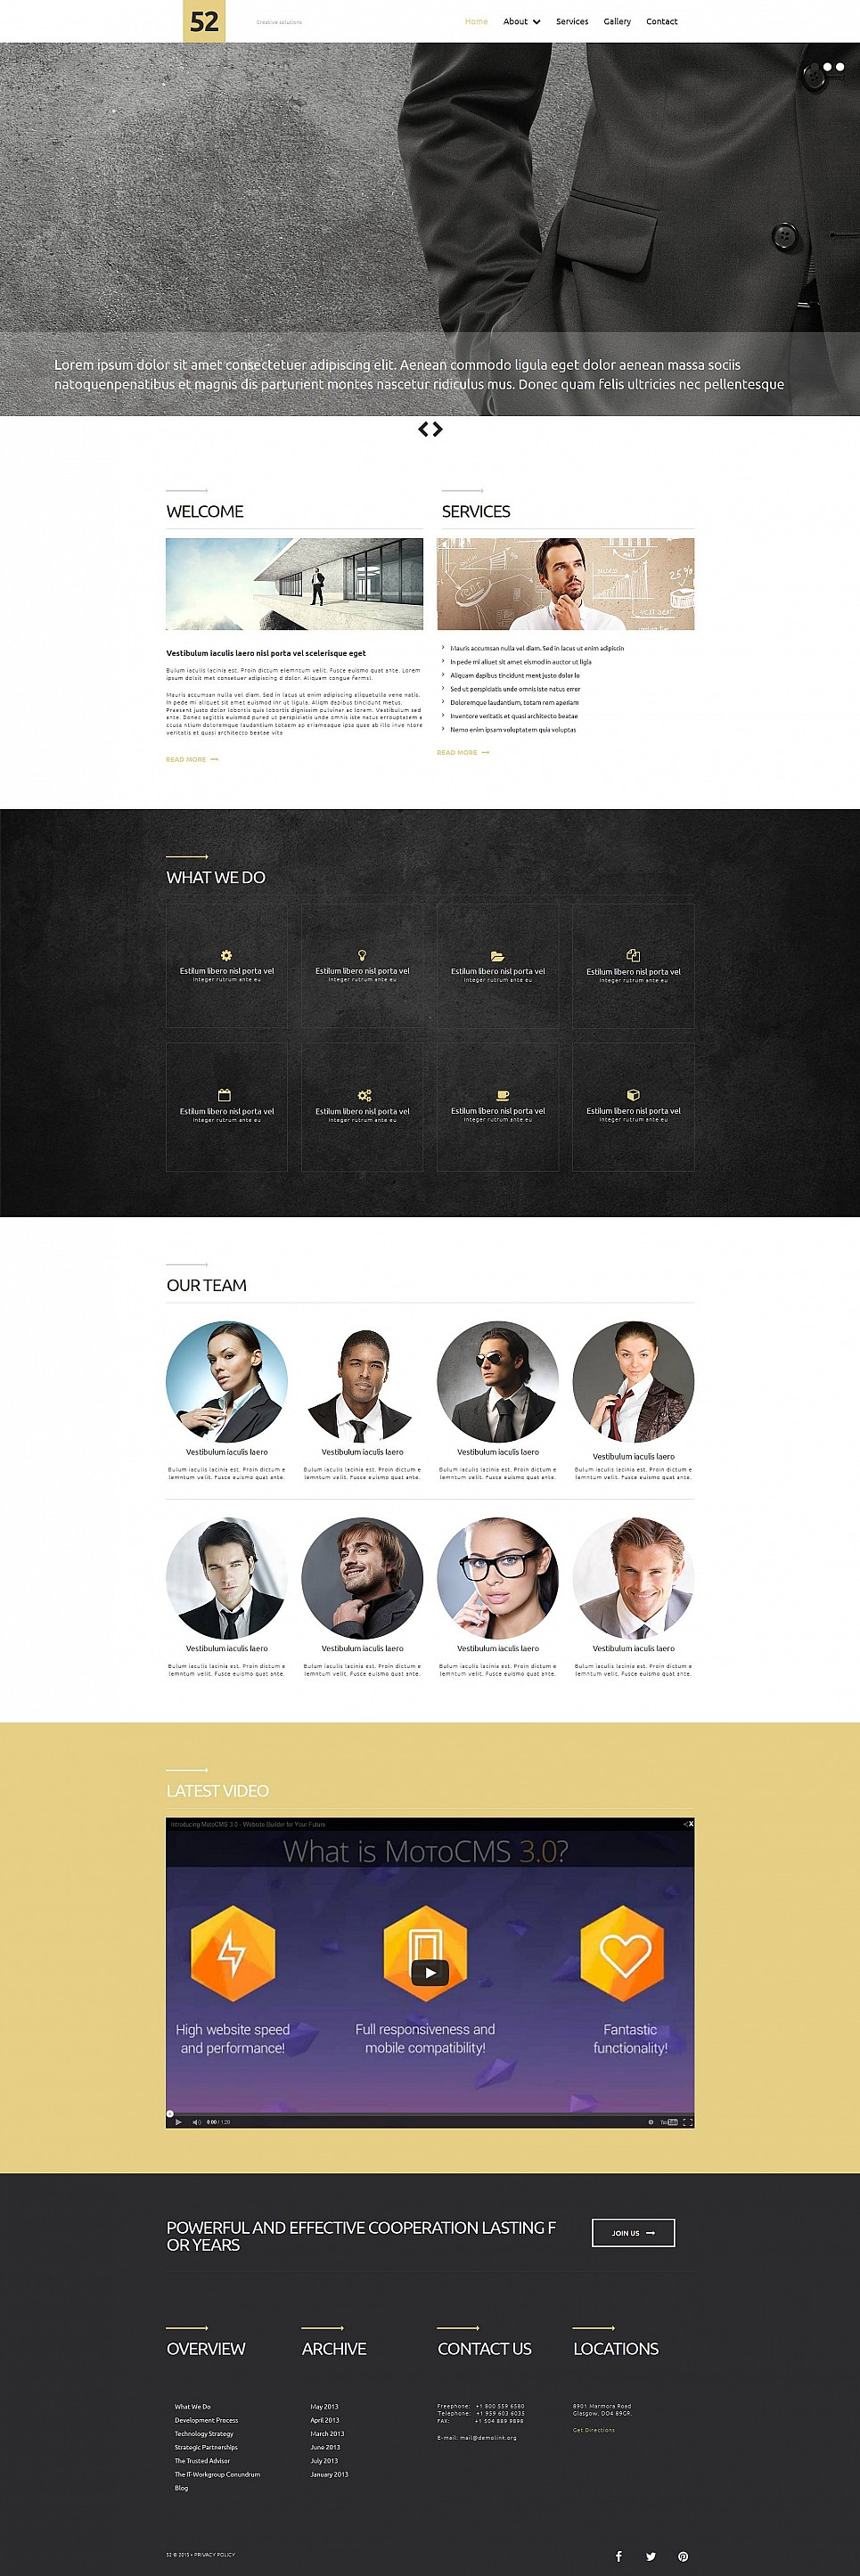 Small Business Website Builder - image